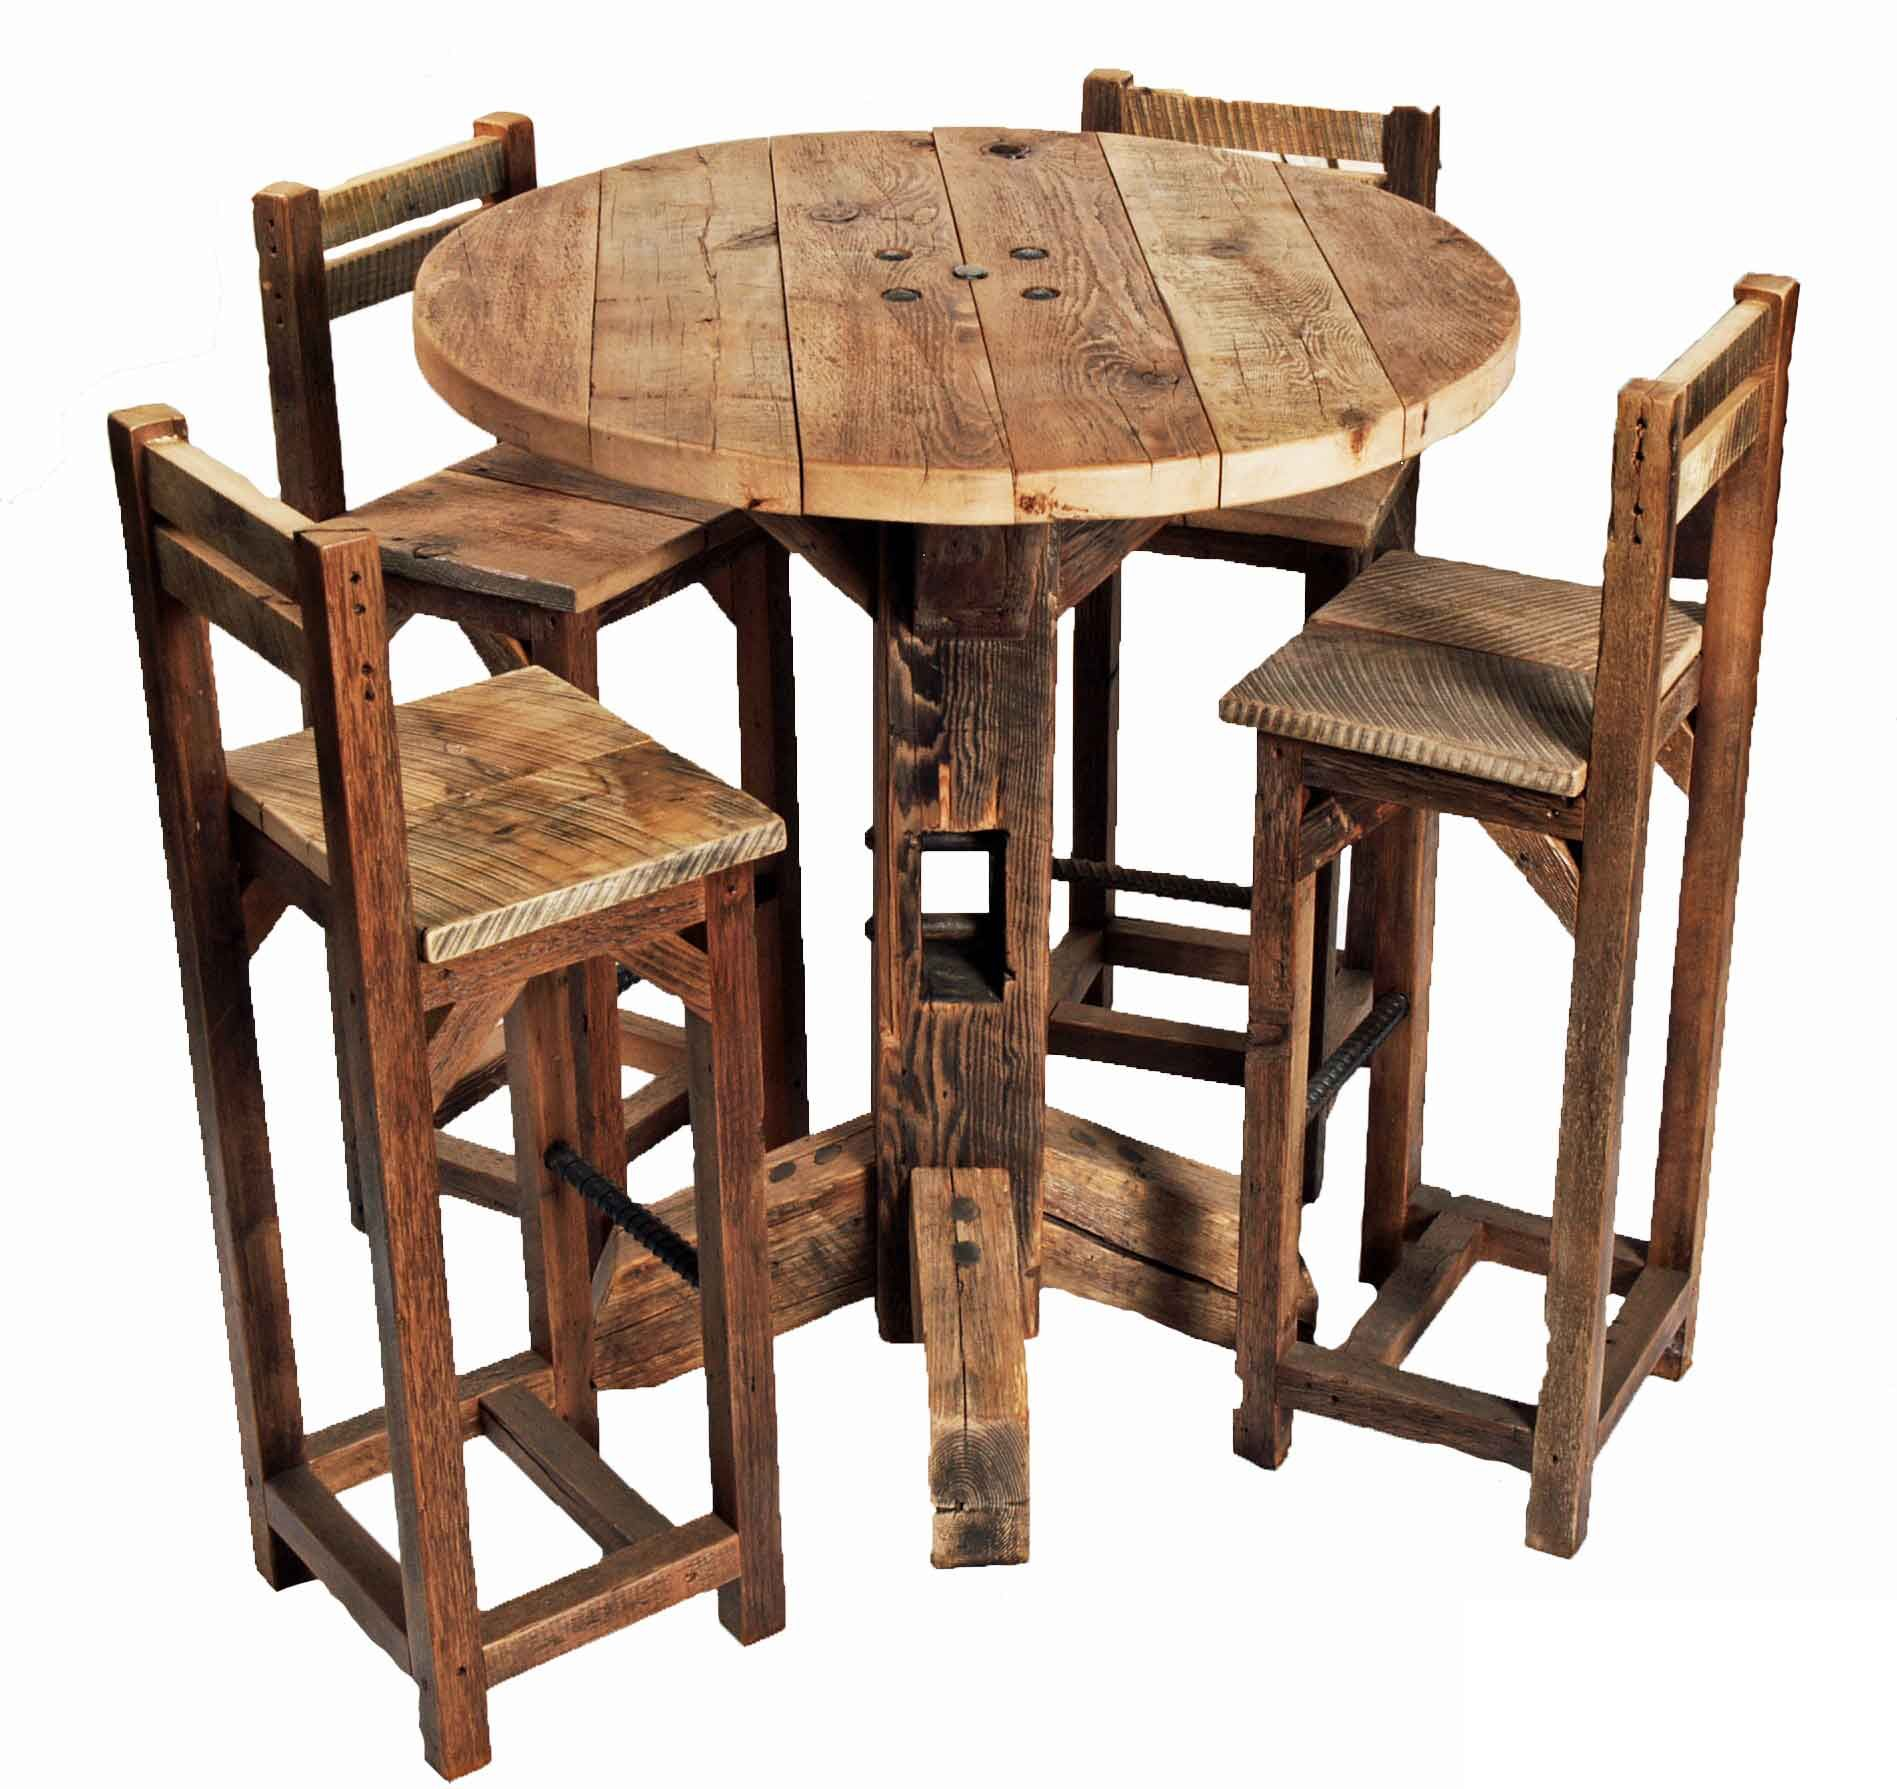 Furniture old rustic small high round top kitchen table for Kitchen table with stools